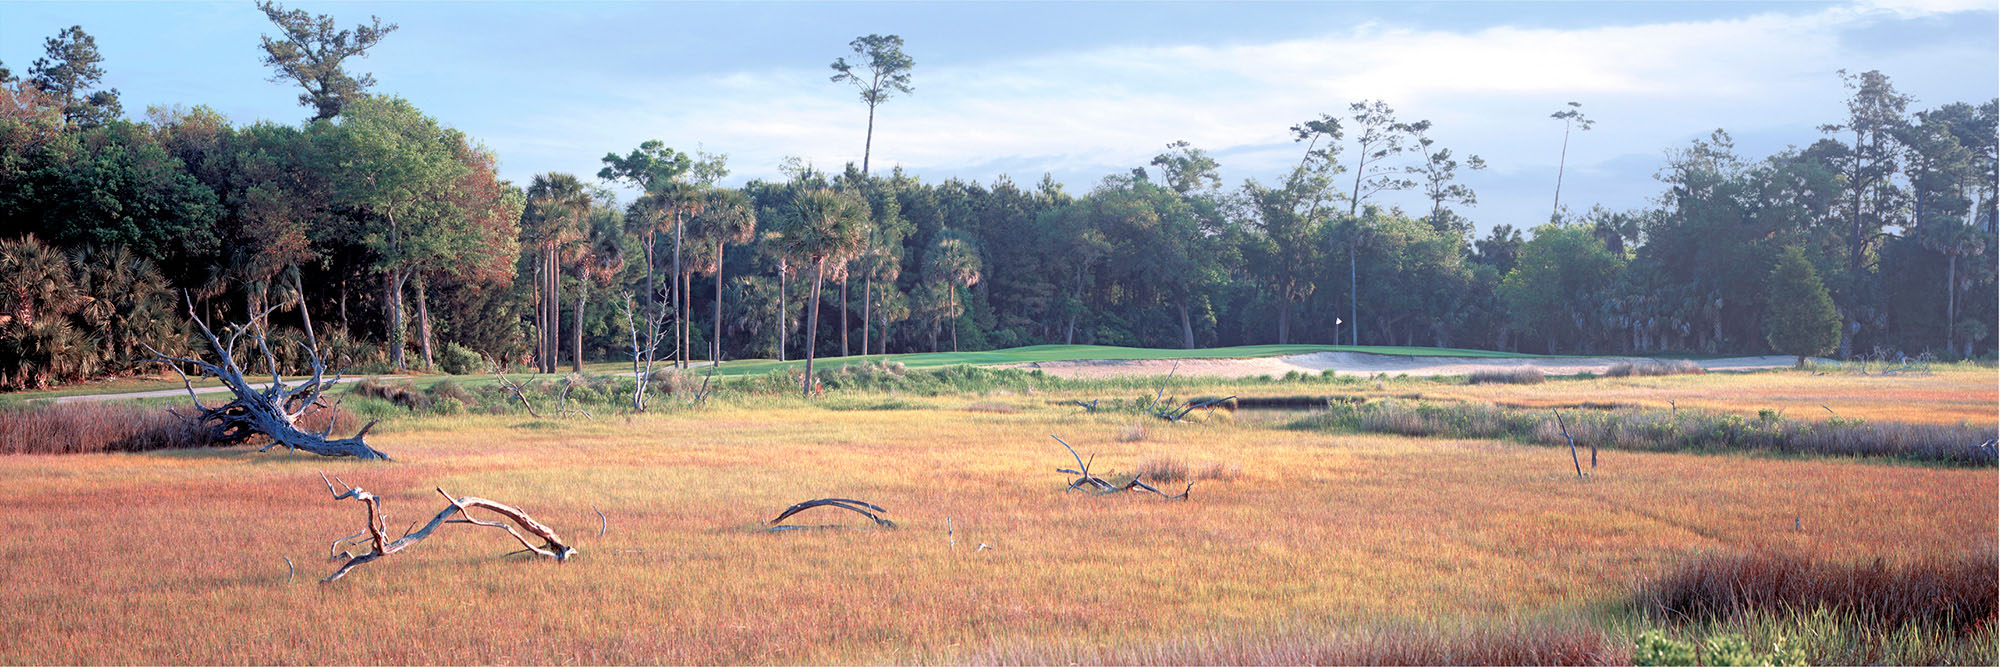 Golf Course Image - Kiawah Osprey Point No. 3